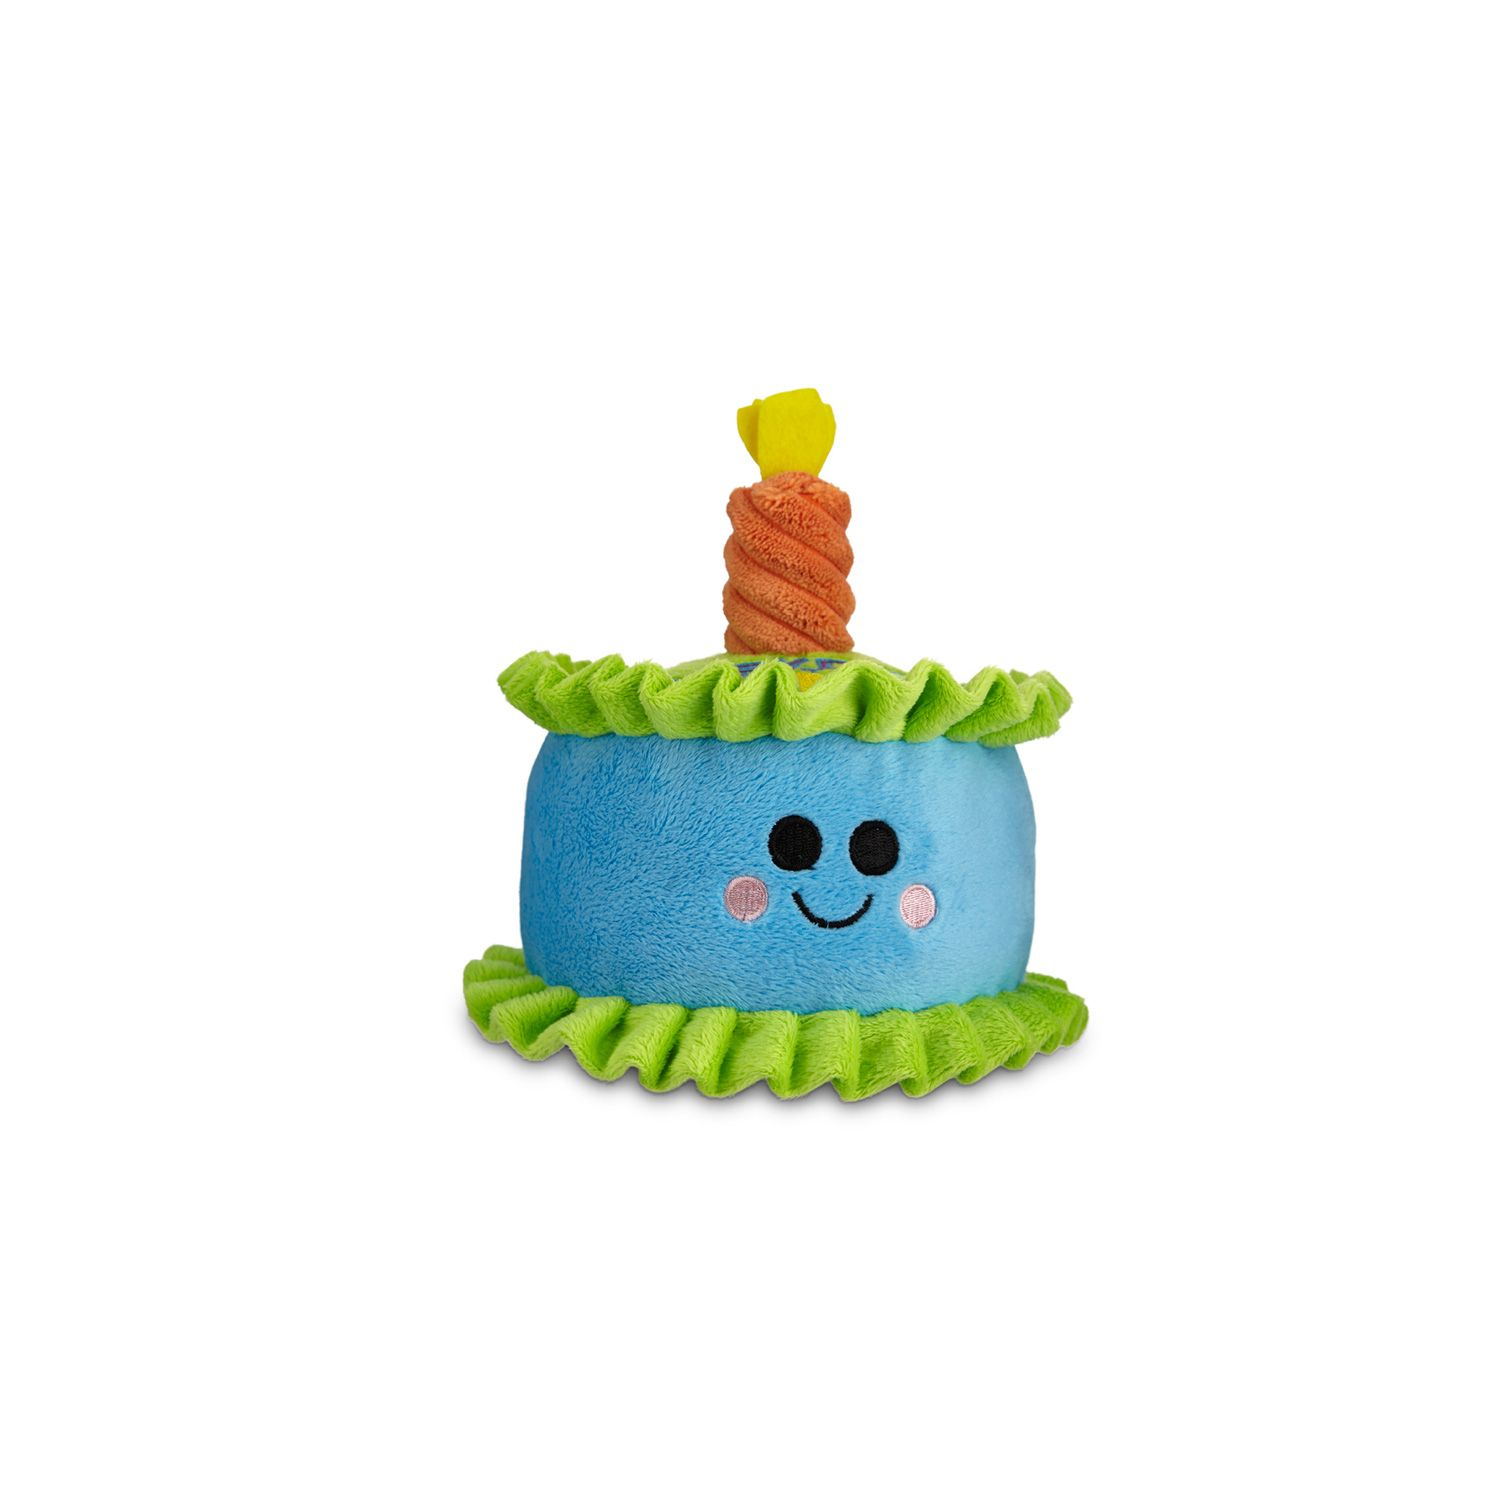 Petco Special Occasions Barkday Cake Dog Toy Dog Toys Dog